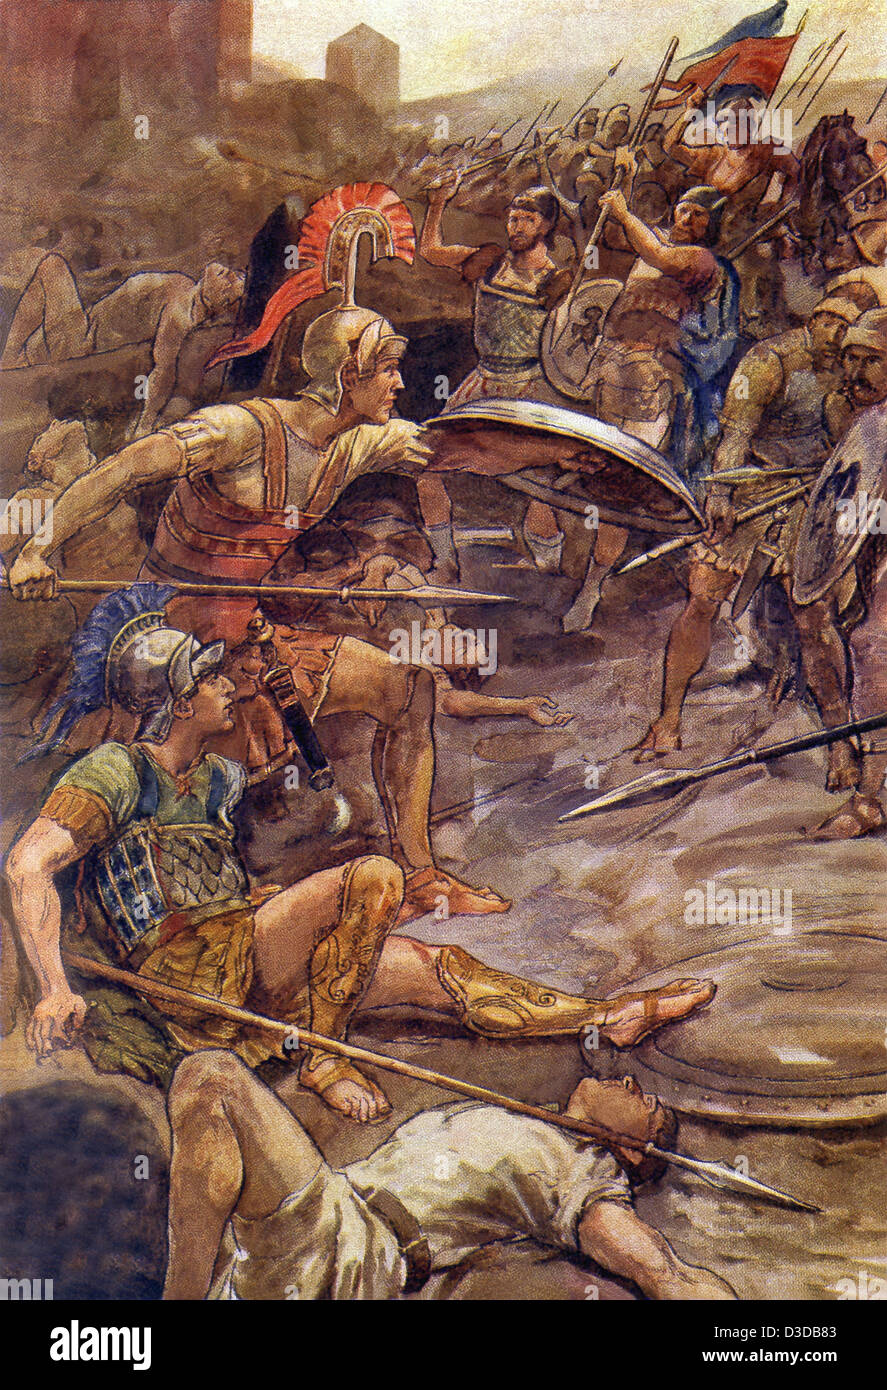 Epaminondas protected Pelopidas from being killed/captured by the enemy at the Battle of Mantinea. - Stock Image